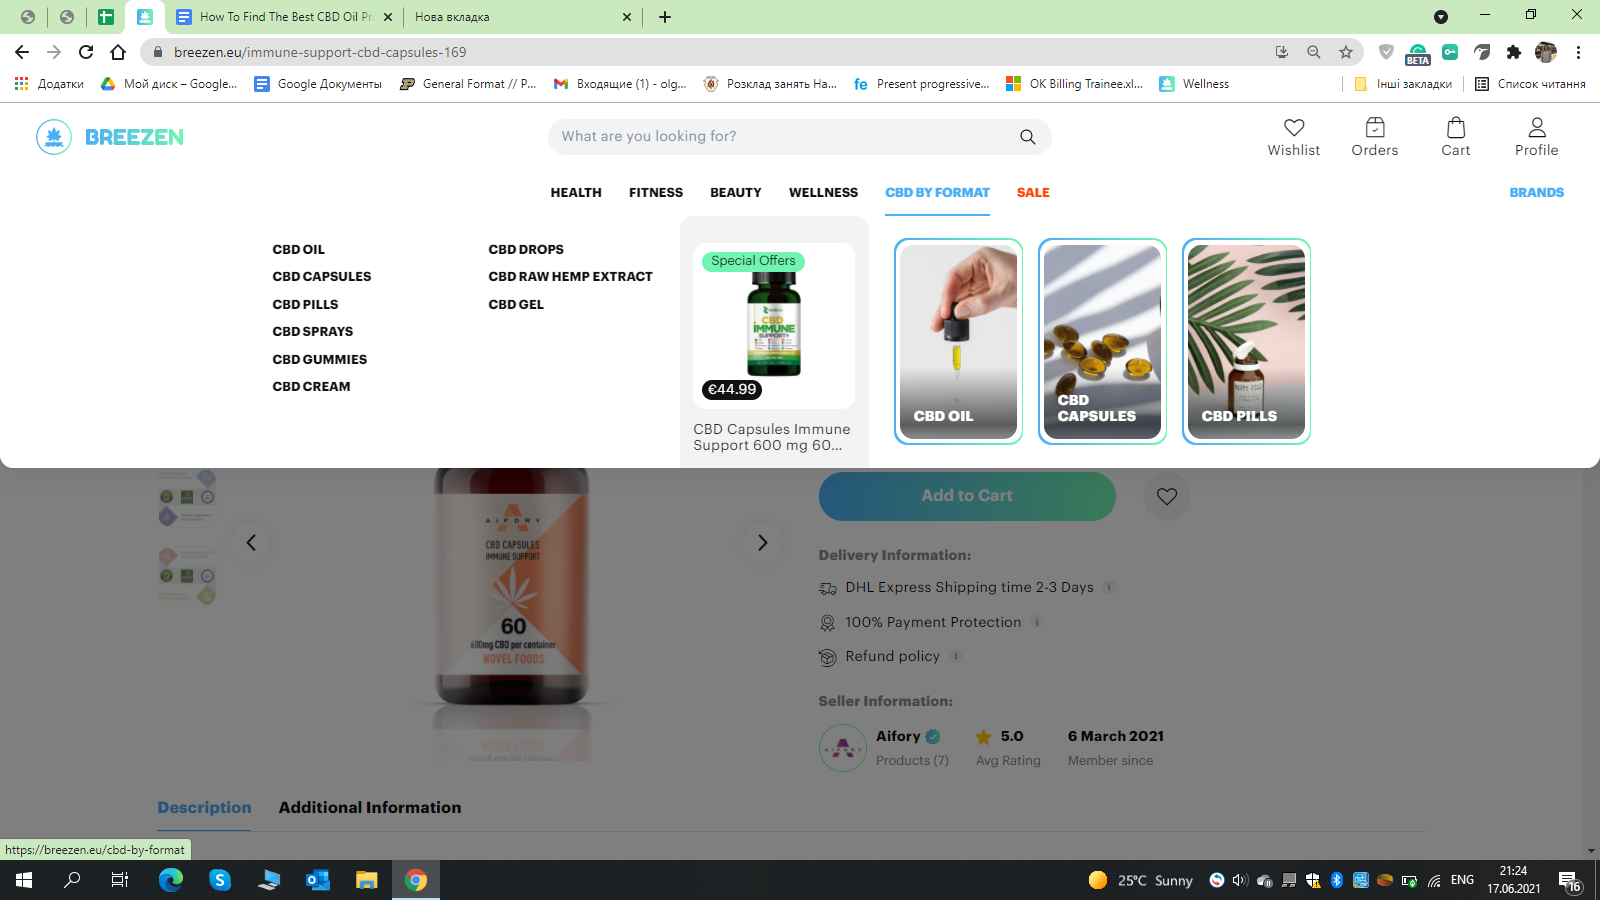 How To Find The Best CBD Oil Product?